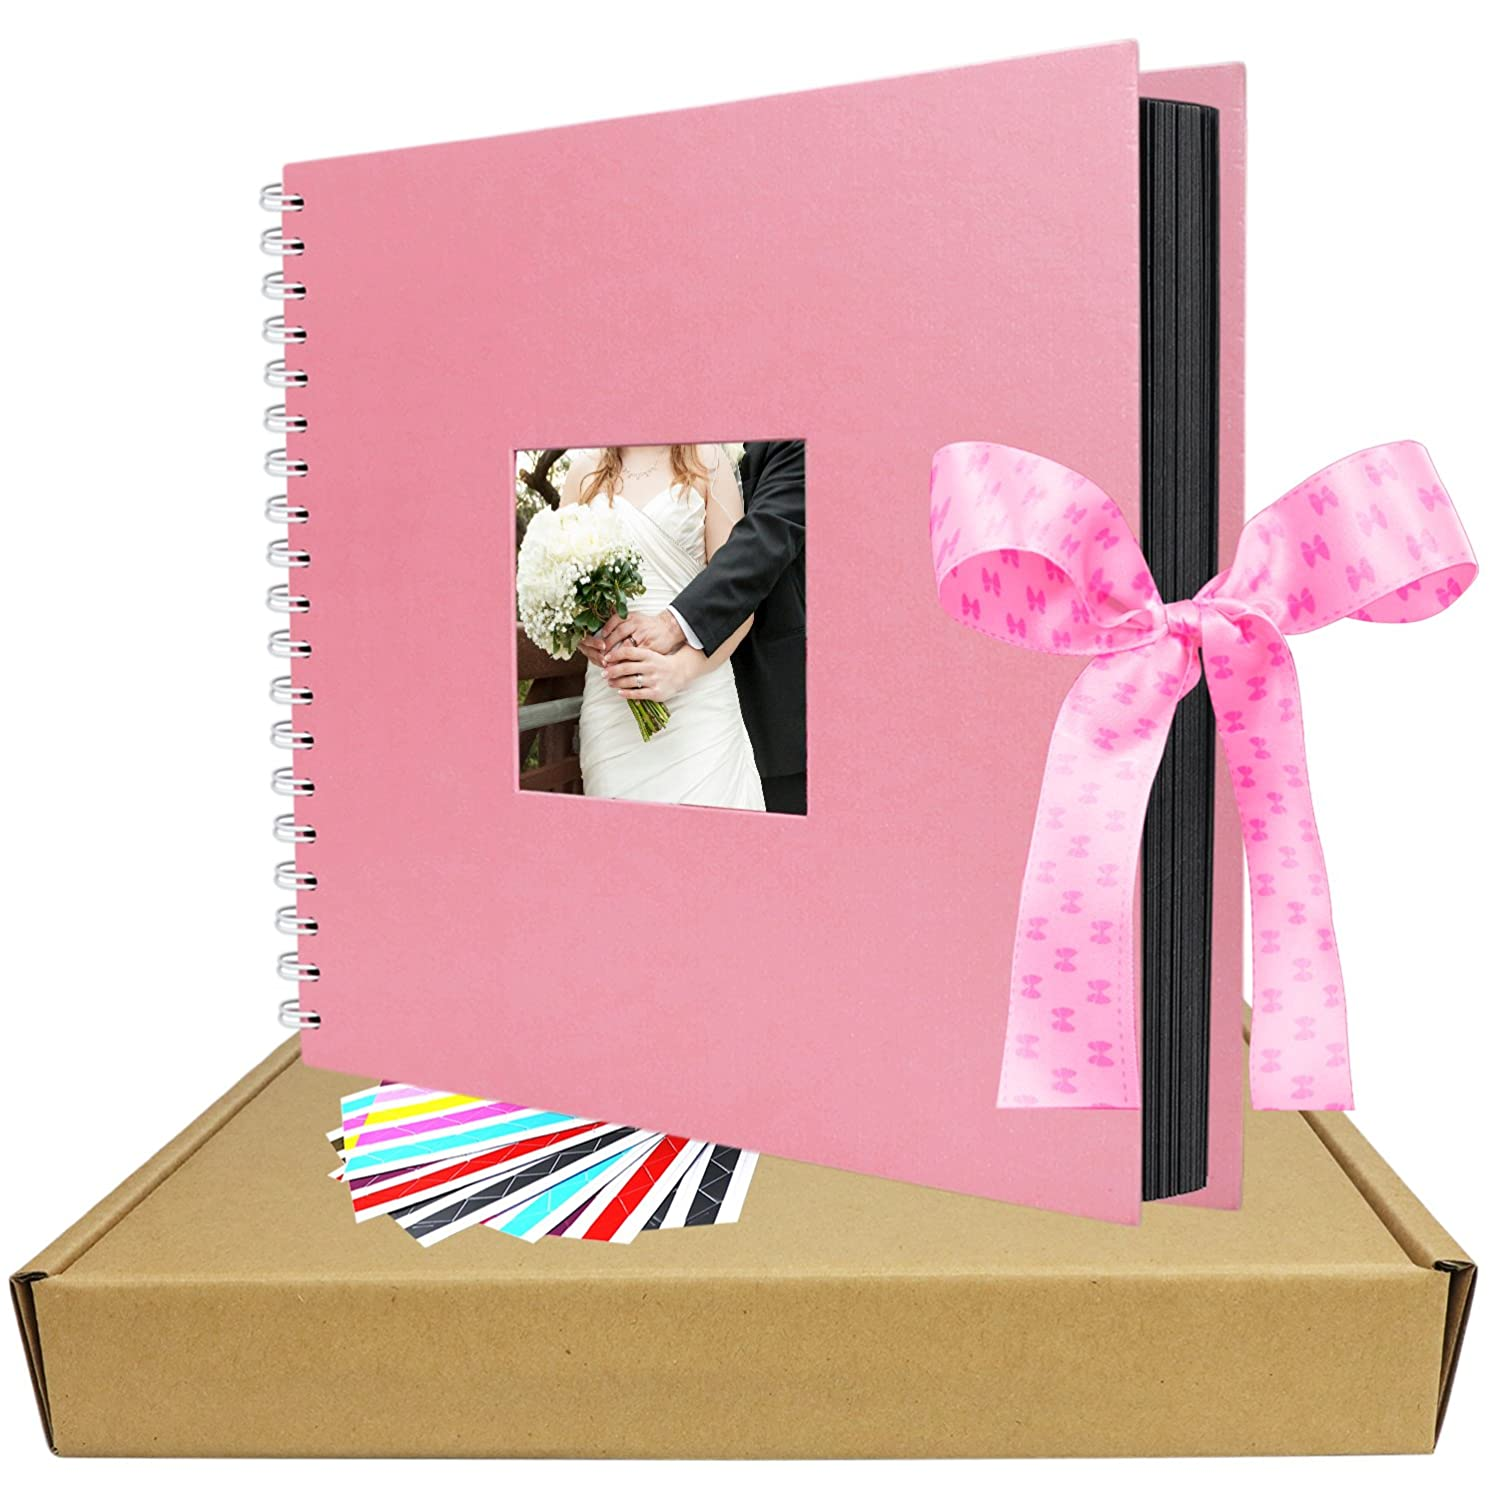 Scrapbook Album, 12x12 inches Pink LUNIQI Photo Collection with Photo Opening and Gift Bow Knot, 80 DIY Pages Craft Pages for Wedding, Valentines, Graduated, Love Moment Recorder (10x10 inches)